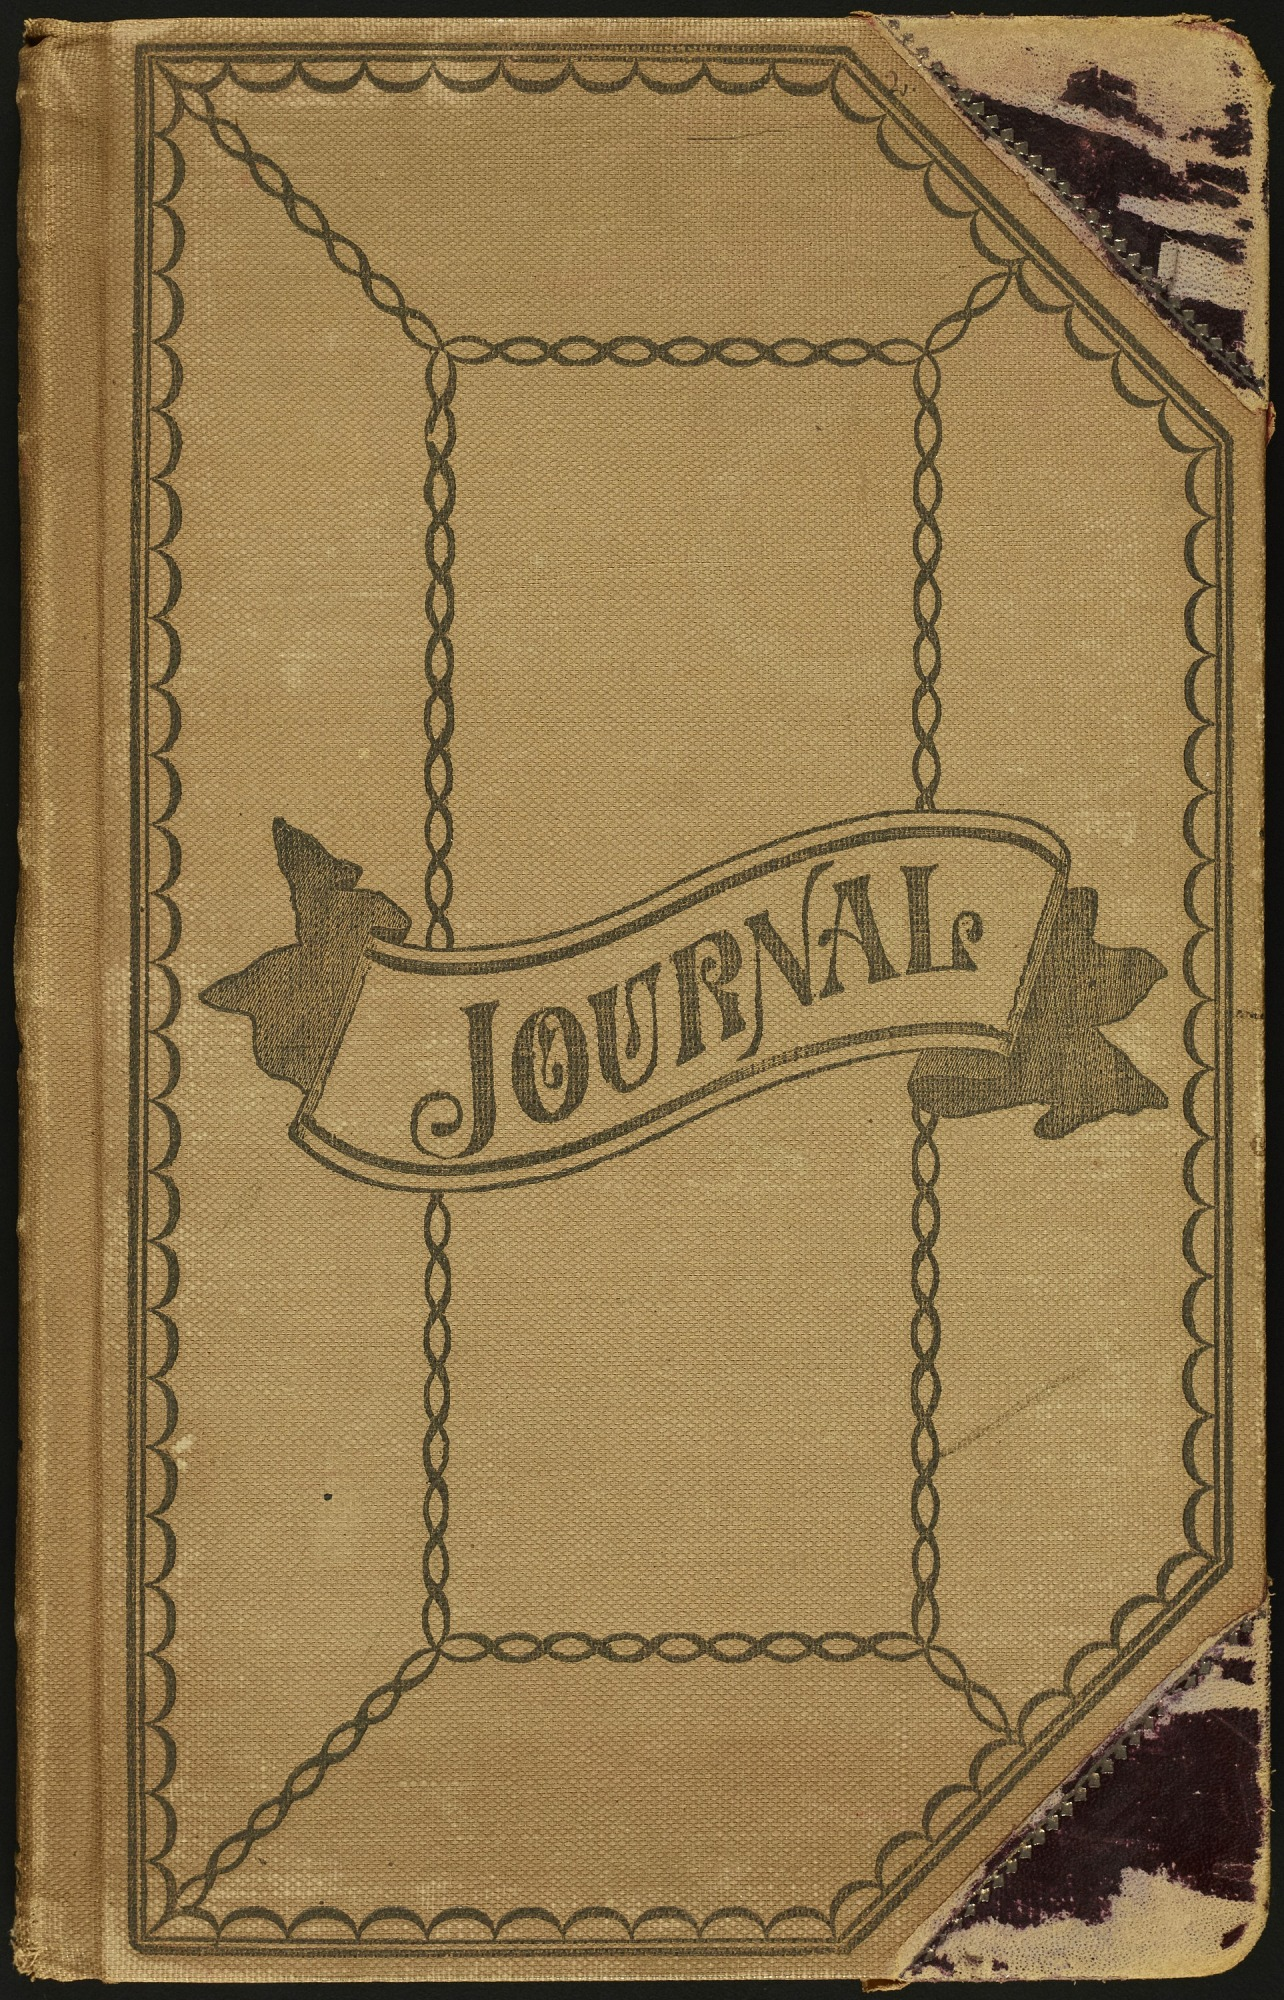 Field notes, December 1904 - January 1907 : mostly bird observations and collecting data taken at Independence and Lawrence, Kansas, also includes notes taken at Minco, Indian Territory (now Oklahoma), May 1905; and Stockton, California, October 1906 - January 1907